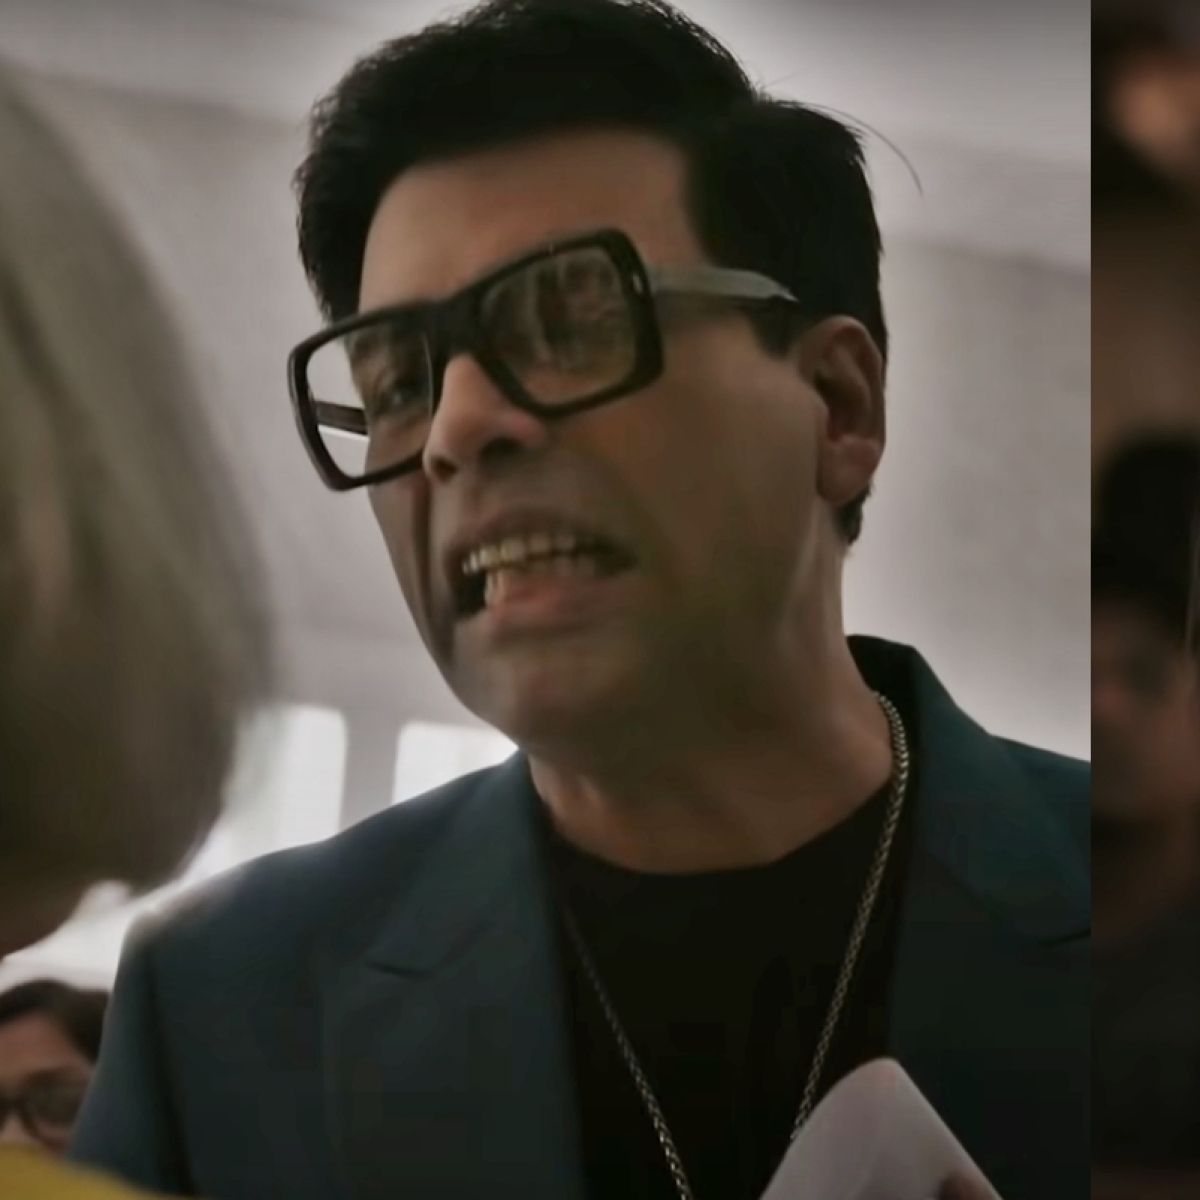 'His eyes were probably more beautiful than his p***s': When Karan Johar asked Ma Anand Sheela about her relationship with Osho